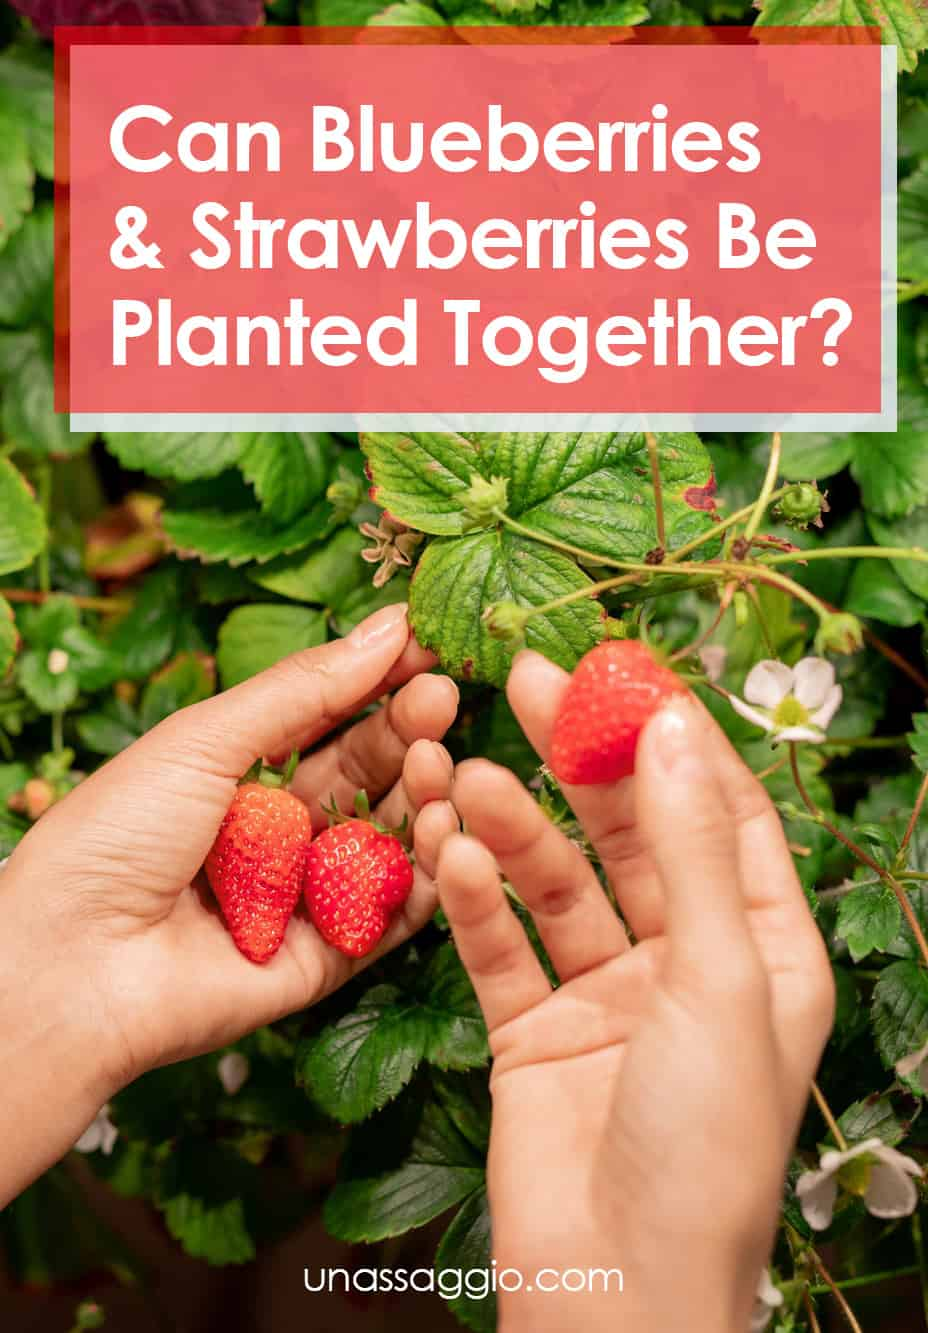 Can blueberries and strawberries be planted together?